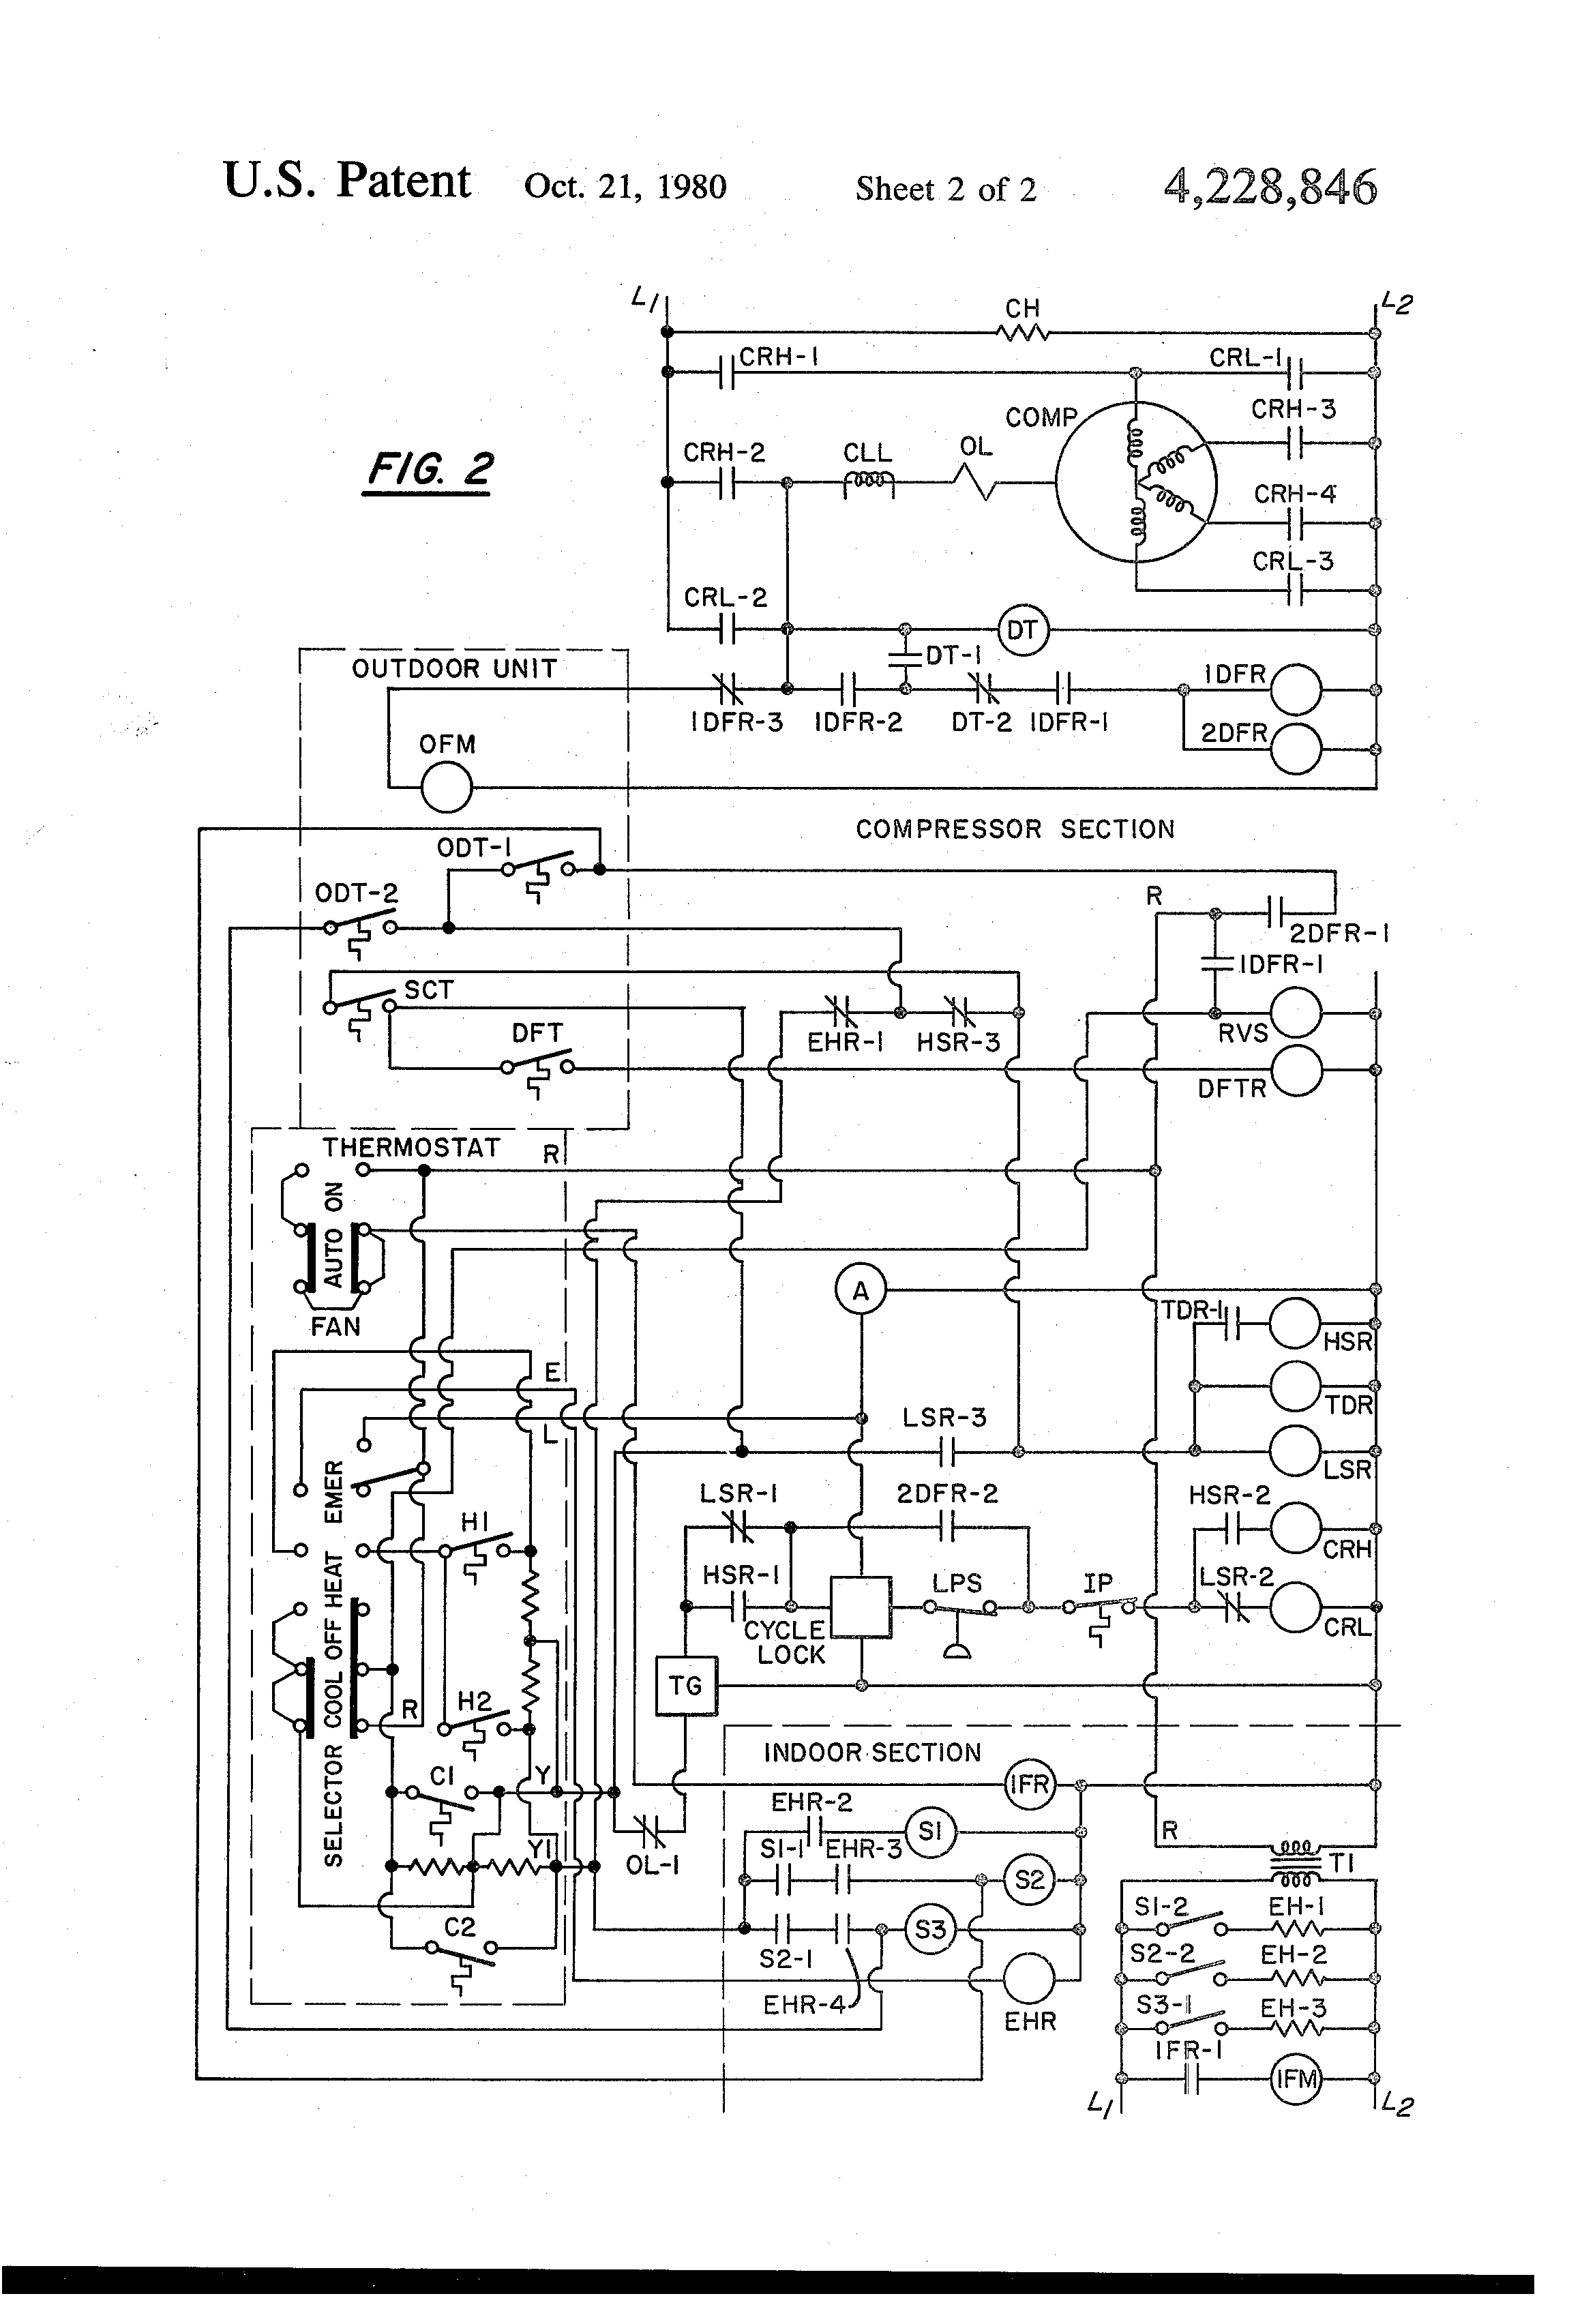 Typical Unit Heater Wiring Diagram Libraries Electric Hot Water Dayton Diagrams Scematicdayton Simple